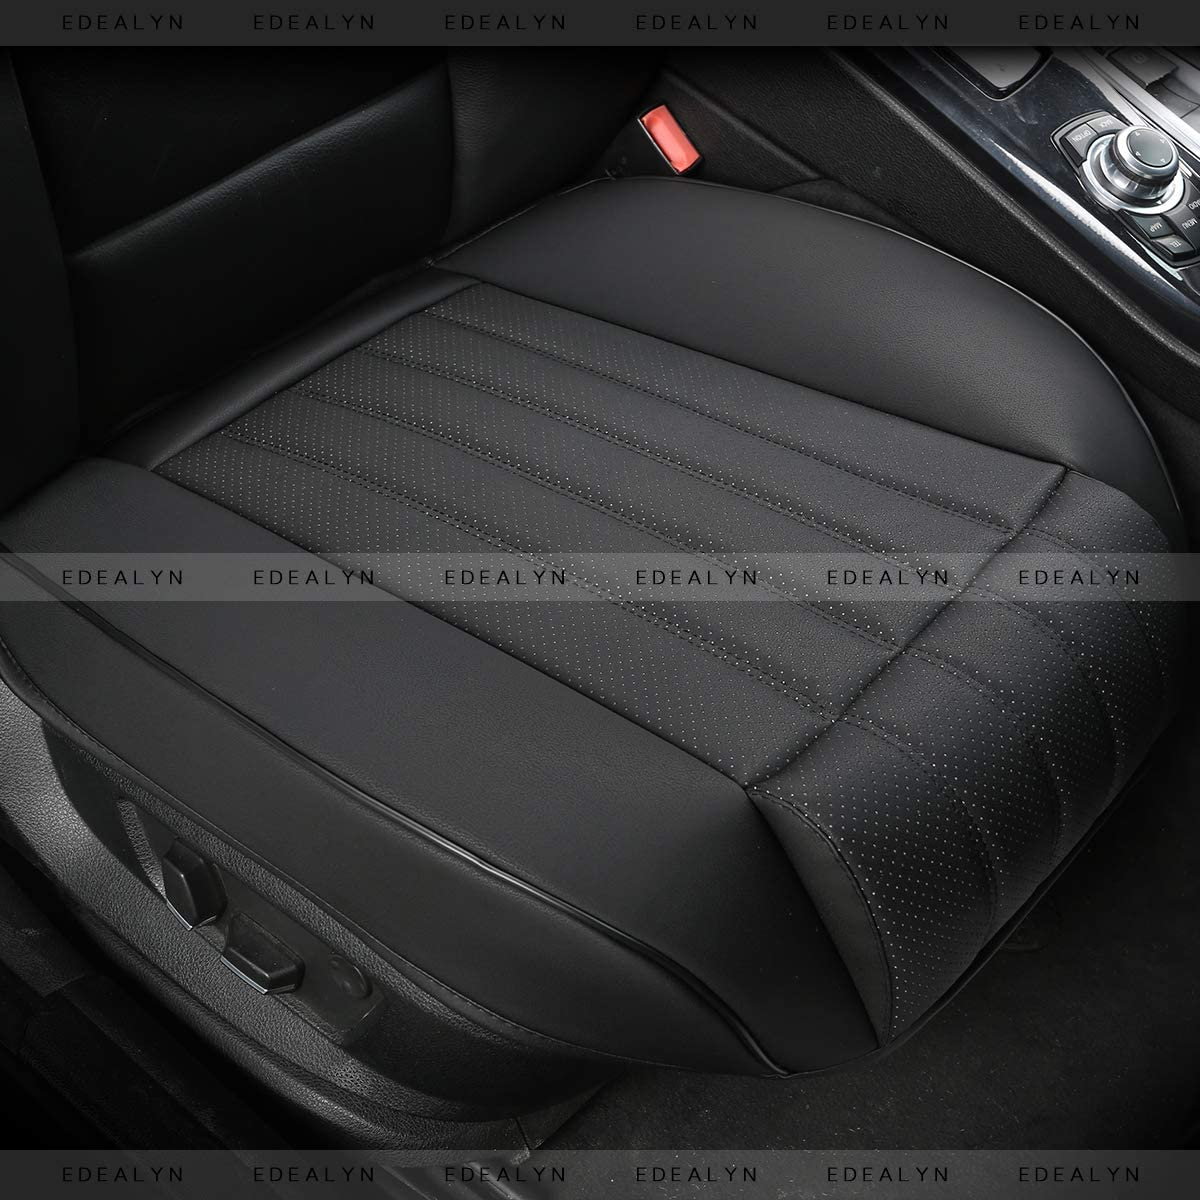 Black Width 20.8 inches by Deep 20.8 inches PU Leather Wrapping Bottom Car Seat Covers with Leg Support -Front Seat Protection Cover Without Backrest 1PCS DINKANUR